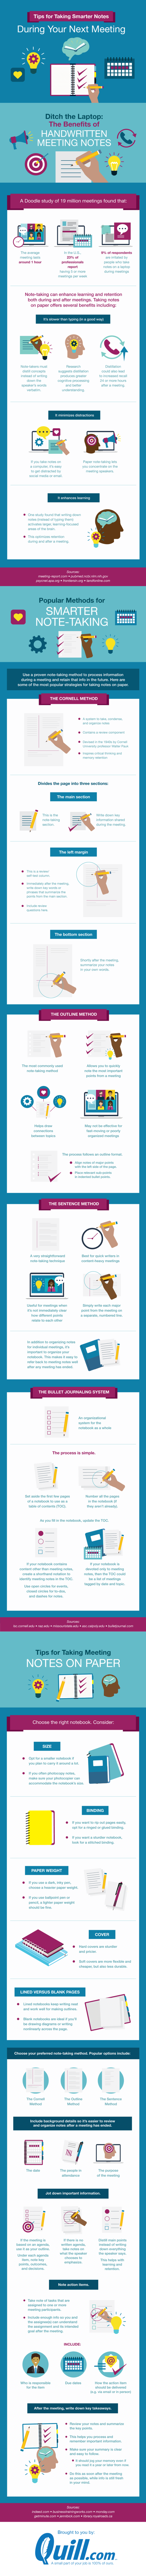 Tips for taking smarter notes during your next meeting